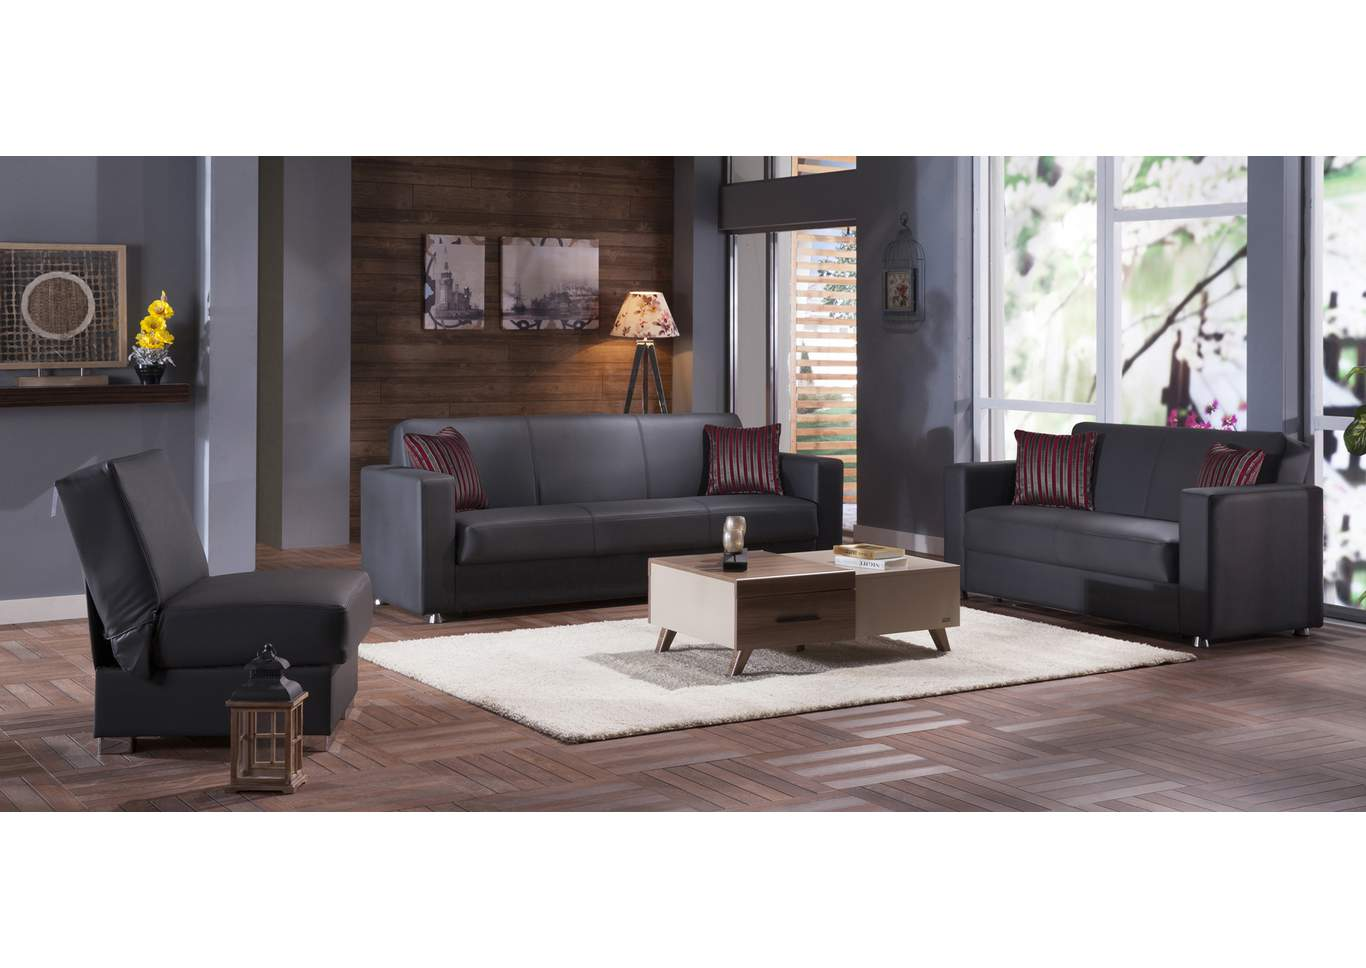 Tokyo Santa Glory Gray 3 Seat Sleeper Sofa,Hudson Furniture & Bedding